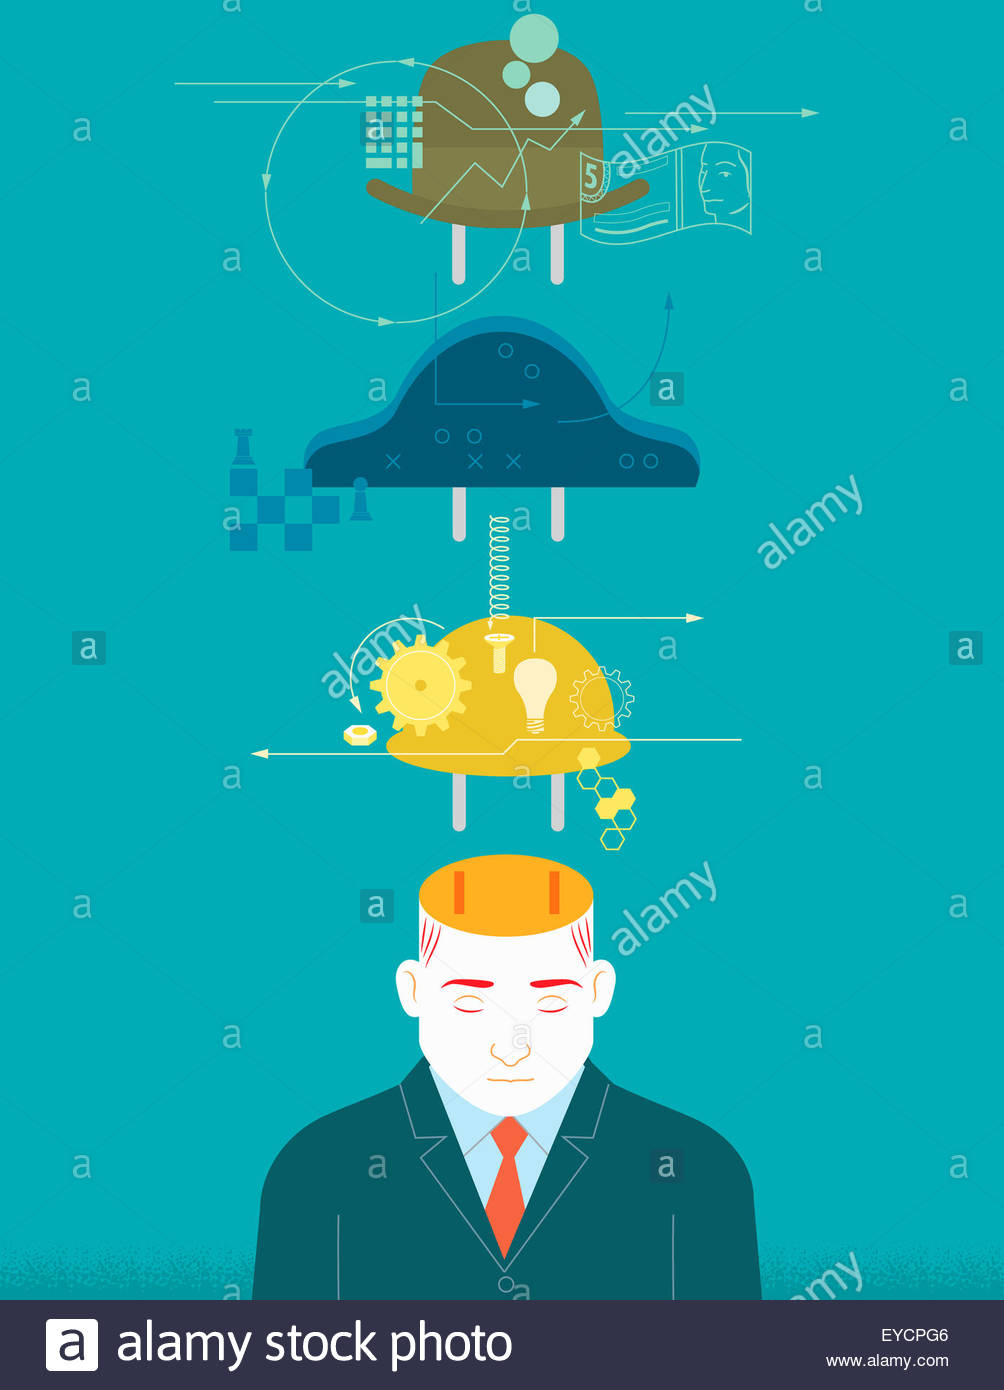 Different hats above businessman - Stock Image